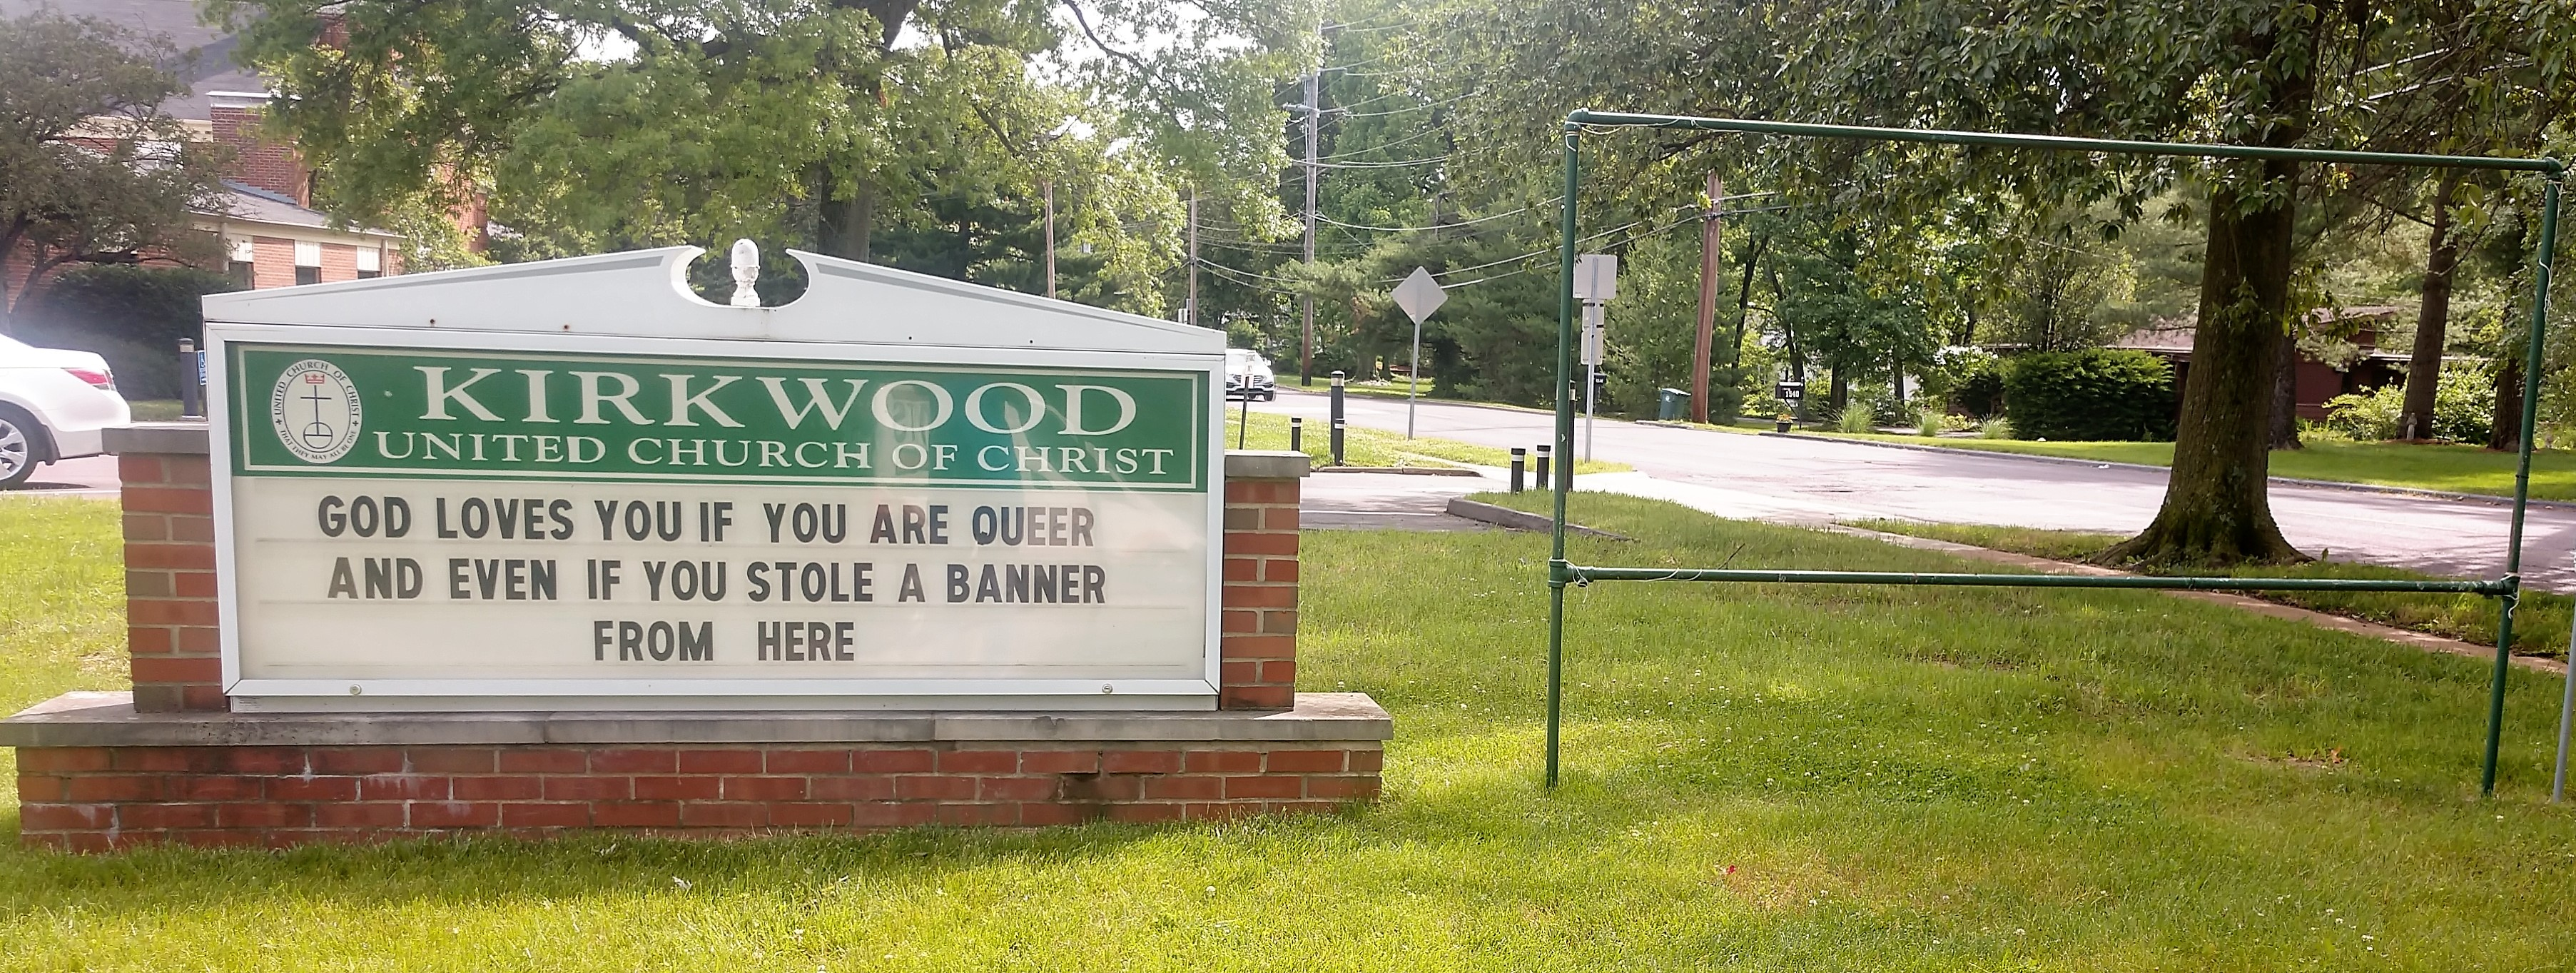 Kirkwood (Mo.) UCC sign board and banner frame, 6/6/19